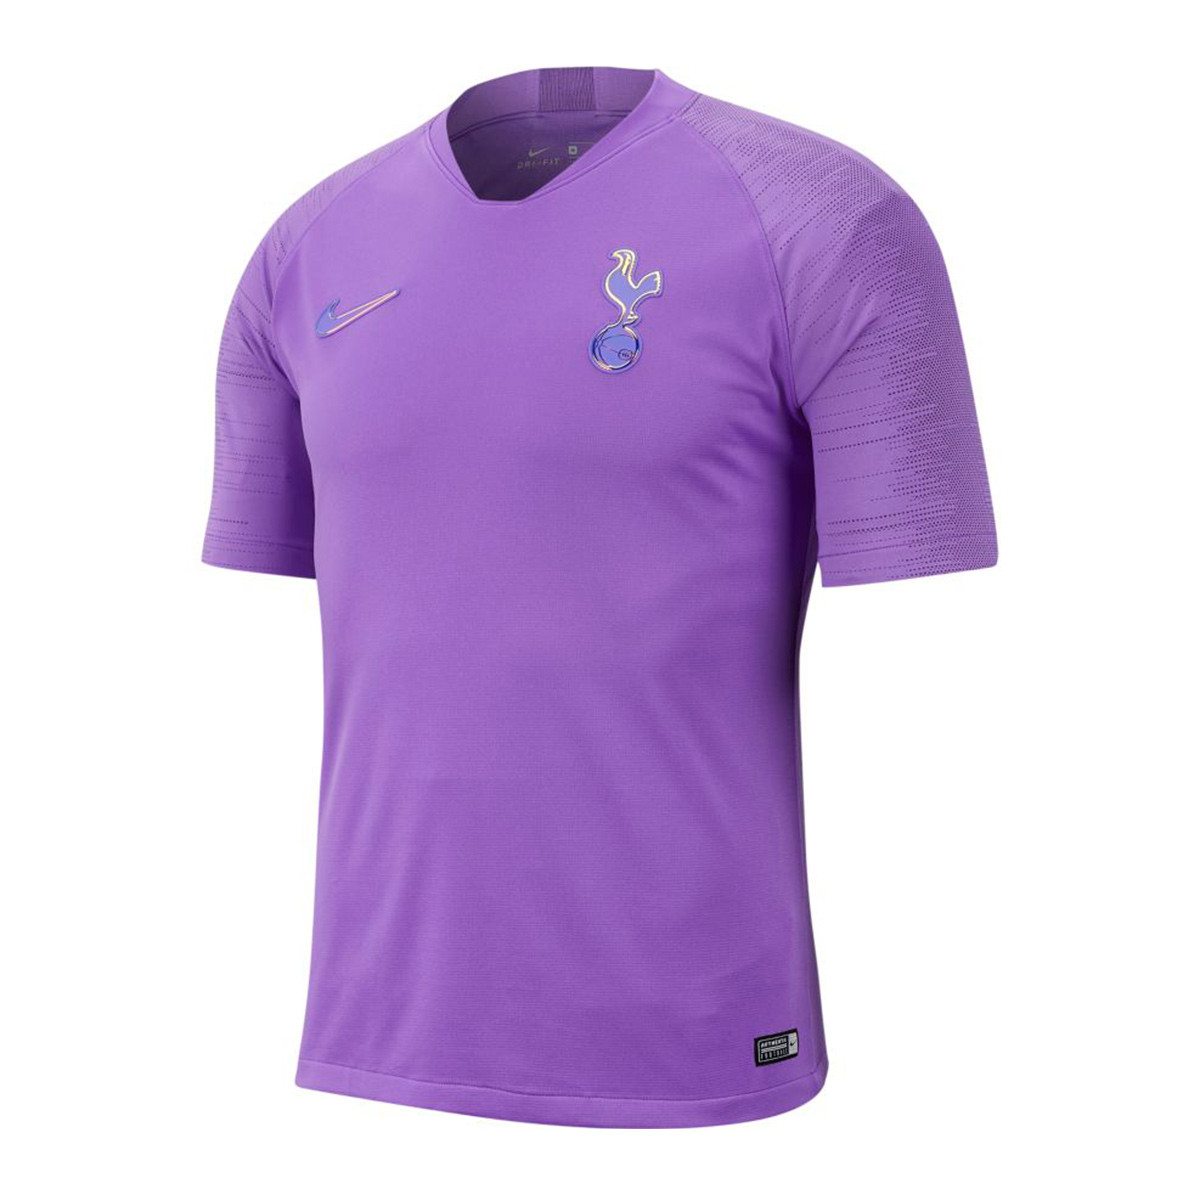 Jersey Nike Tottenham Hotspur Breathe Strike Ss 2019 2020 Action Grape Binary Blue Football Store Futbol Emotion